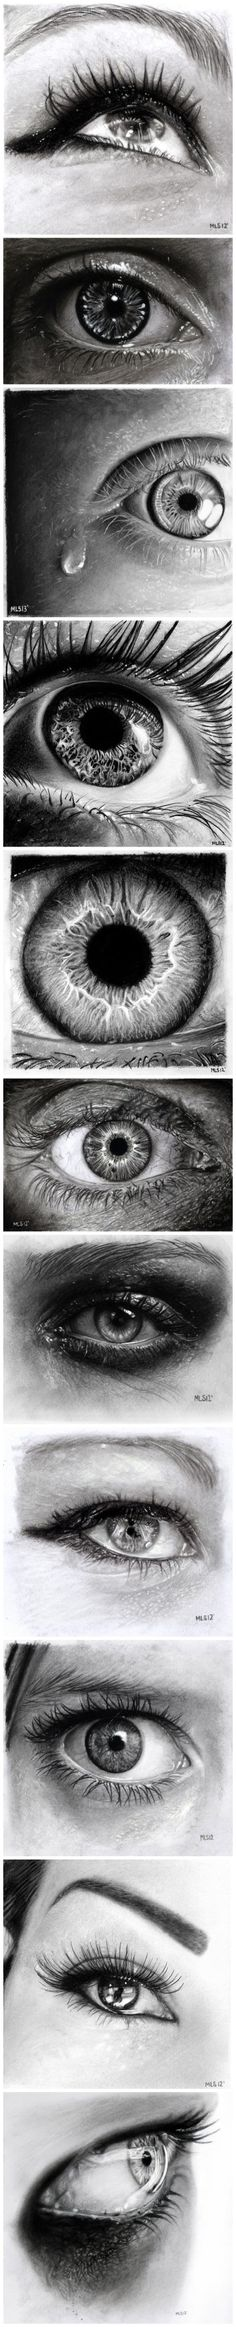 eyes---Pencil drawings...yes, drawings!